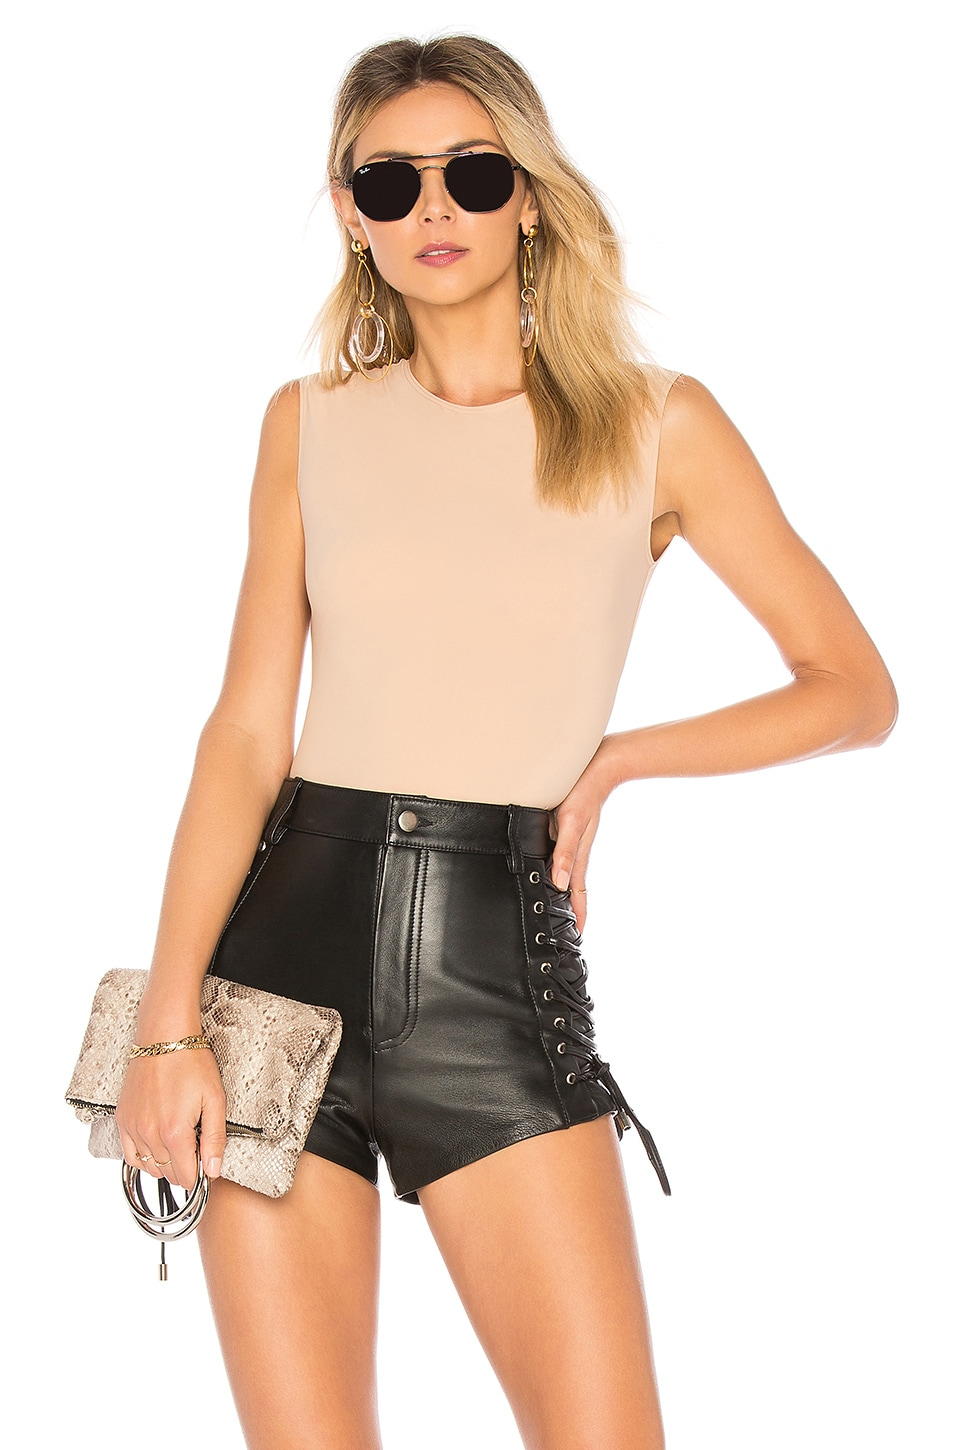 ALIX NYC Lenox Bodysuit in Nude